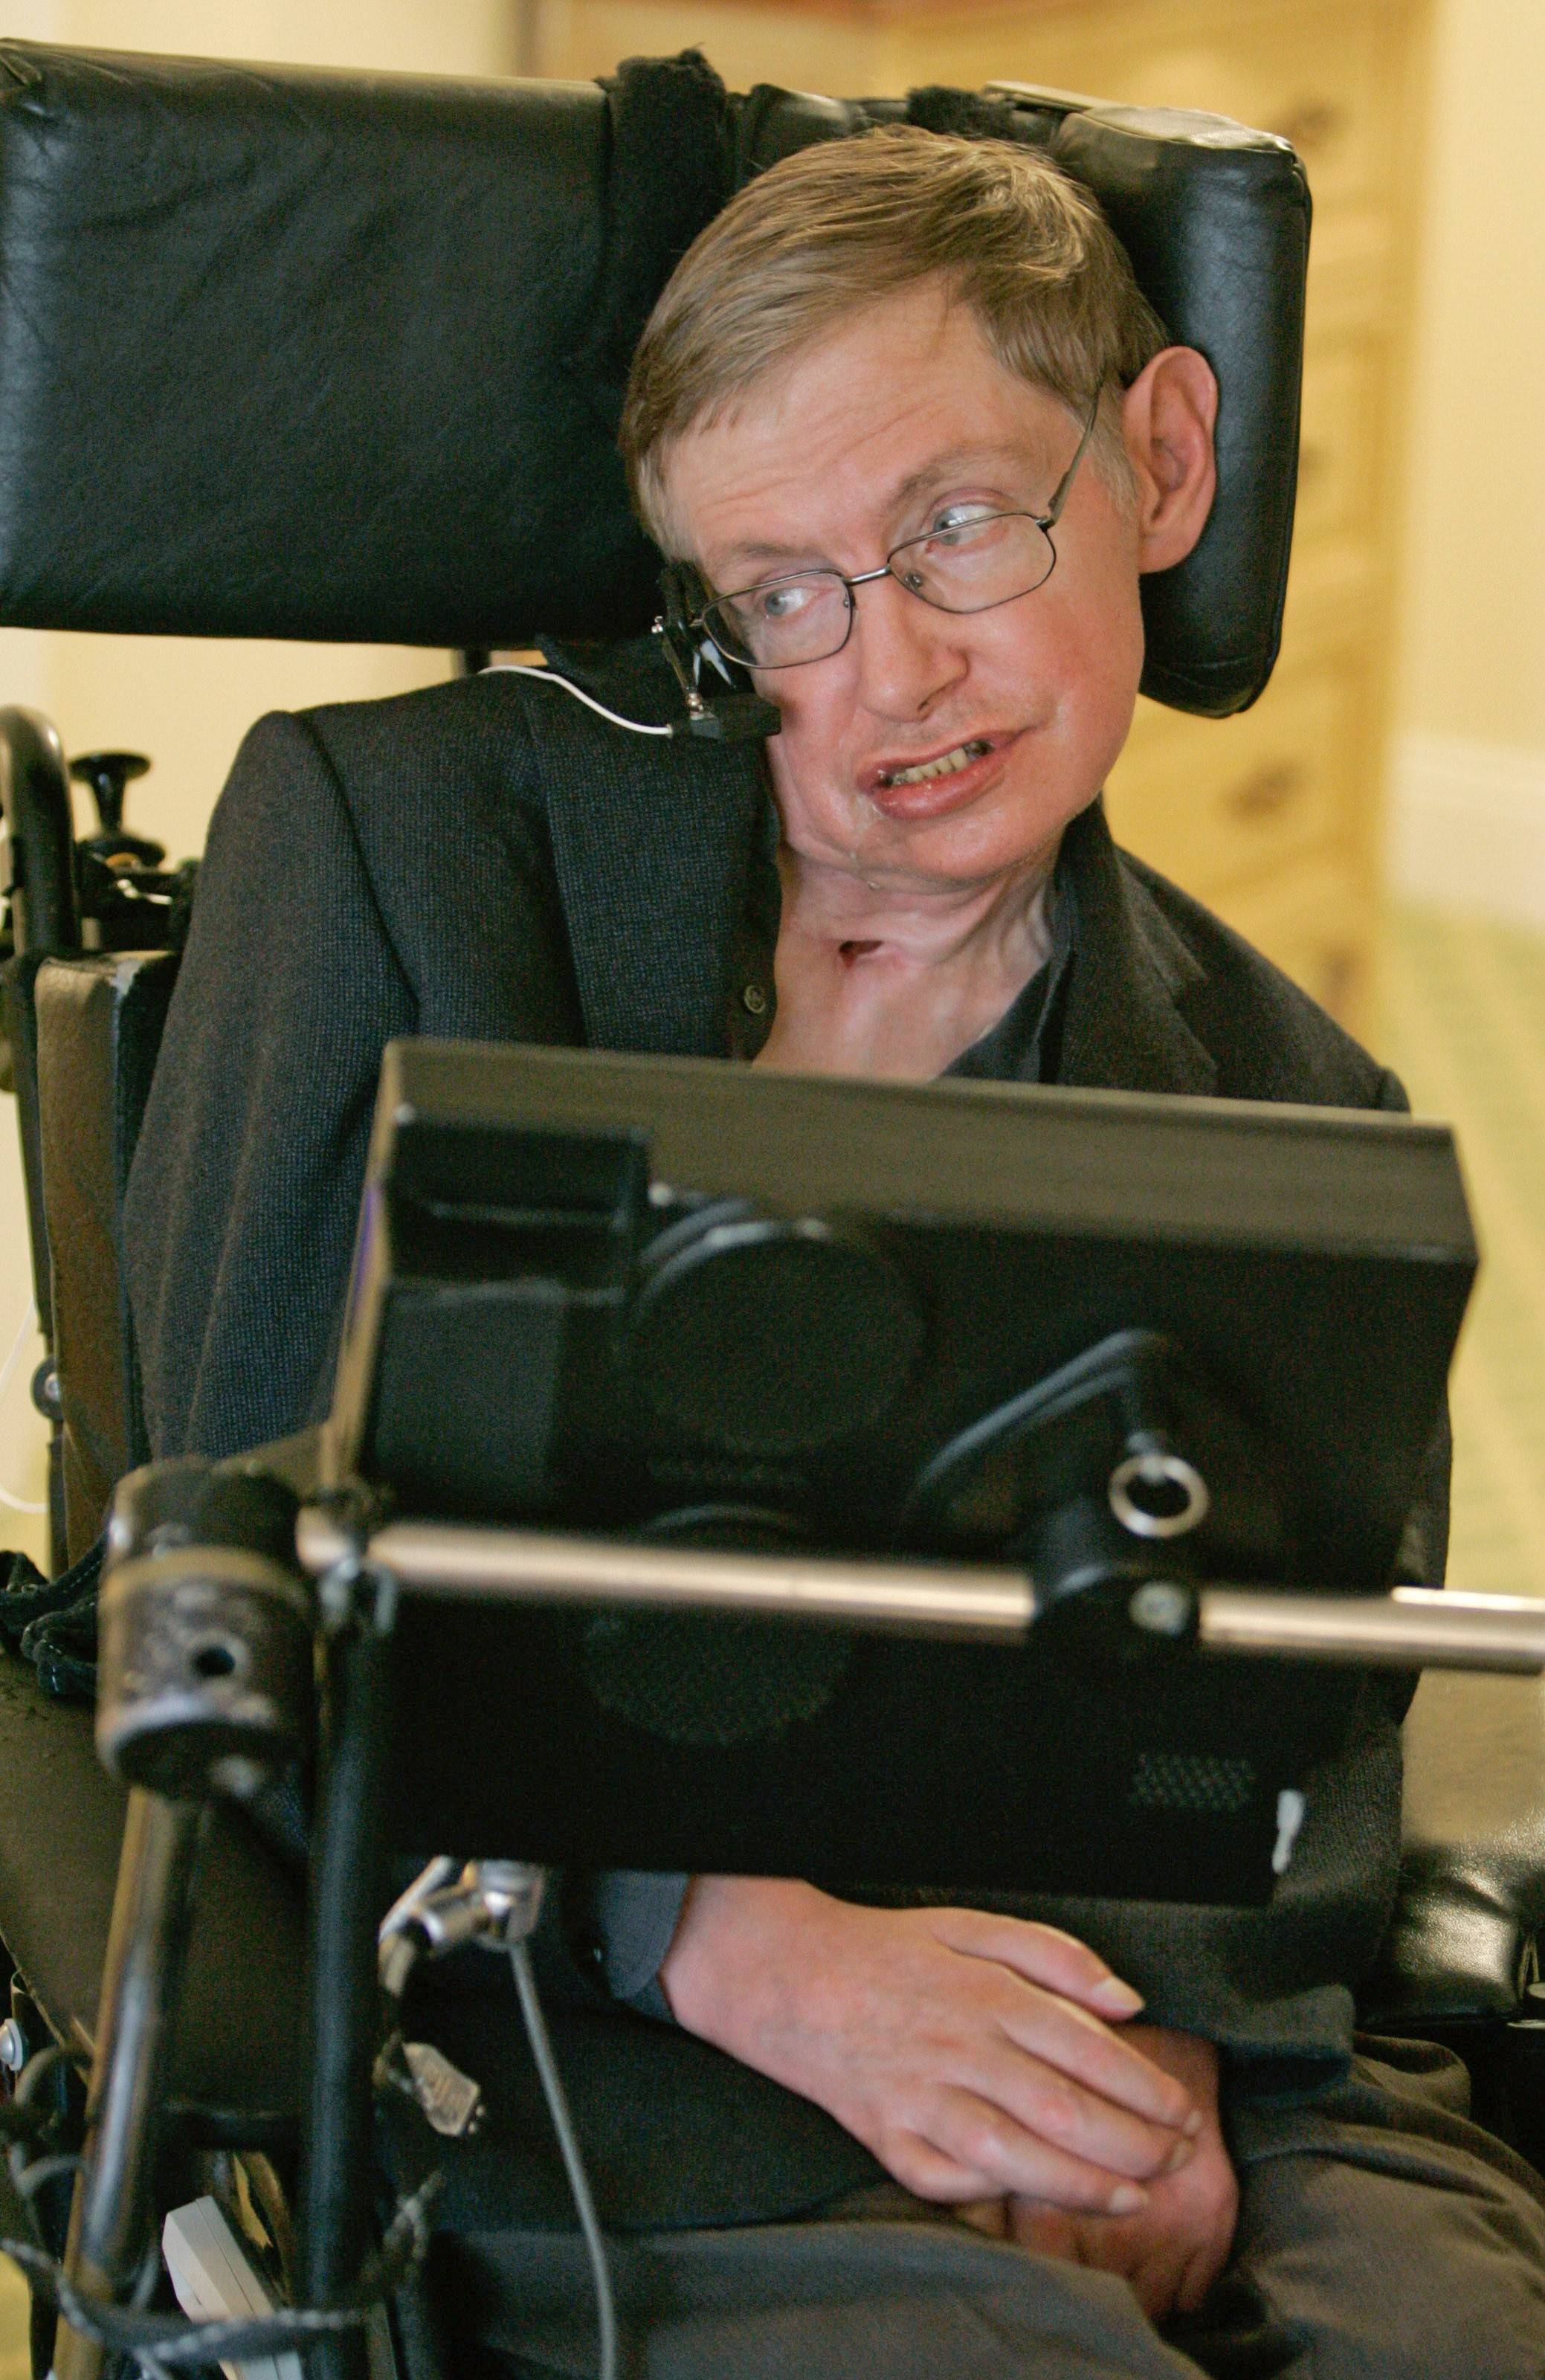 In this Thursday, April 26, 2007 file photo physicist Stephen Hawking answers questions during an interview in Orlando, Fla.